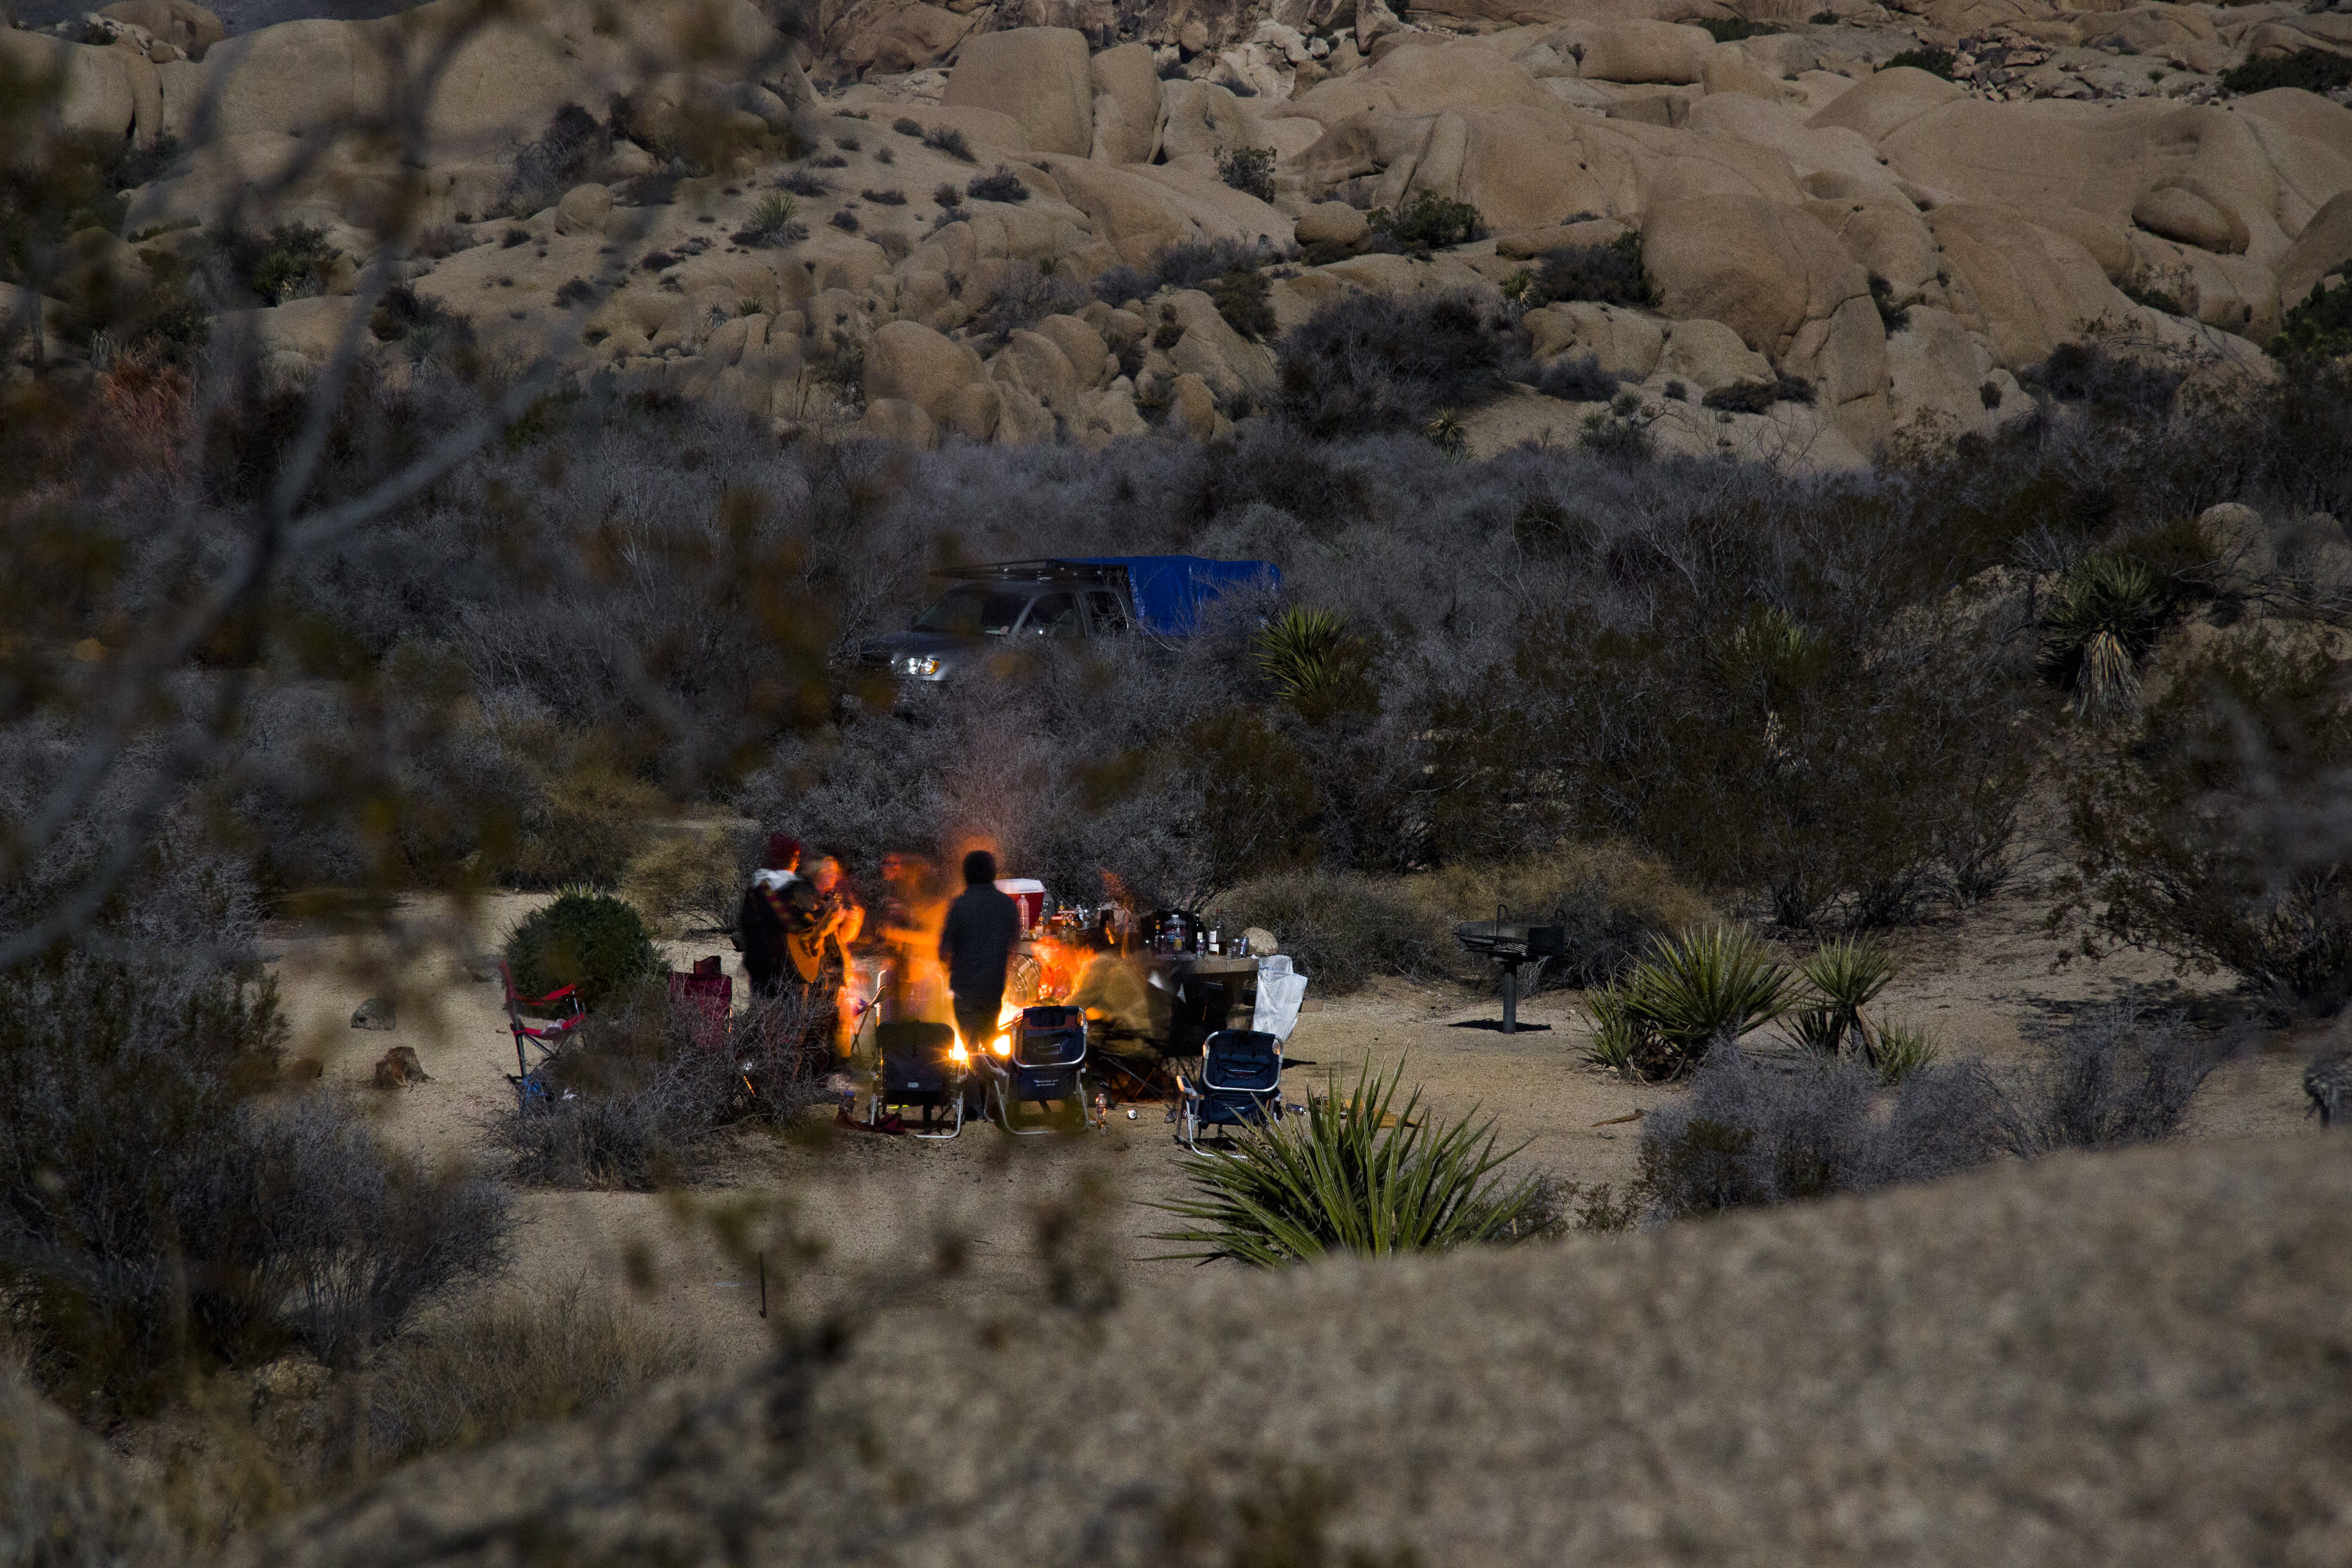 Campers gather around the fire ring at the Jumbo Rocks Campground. NPS / Brad Sutton